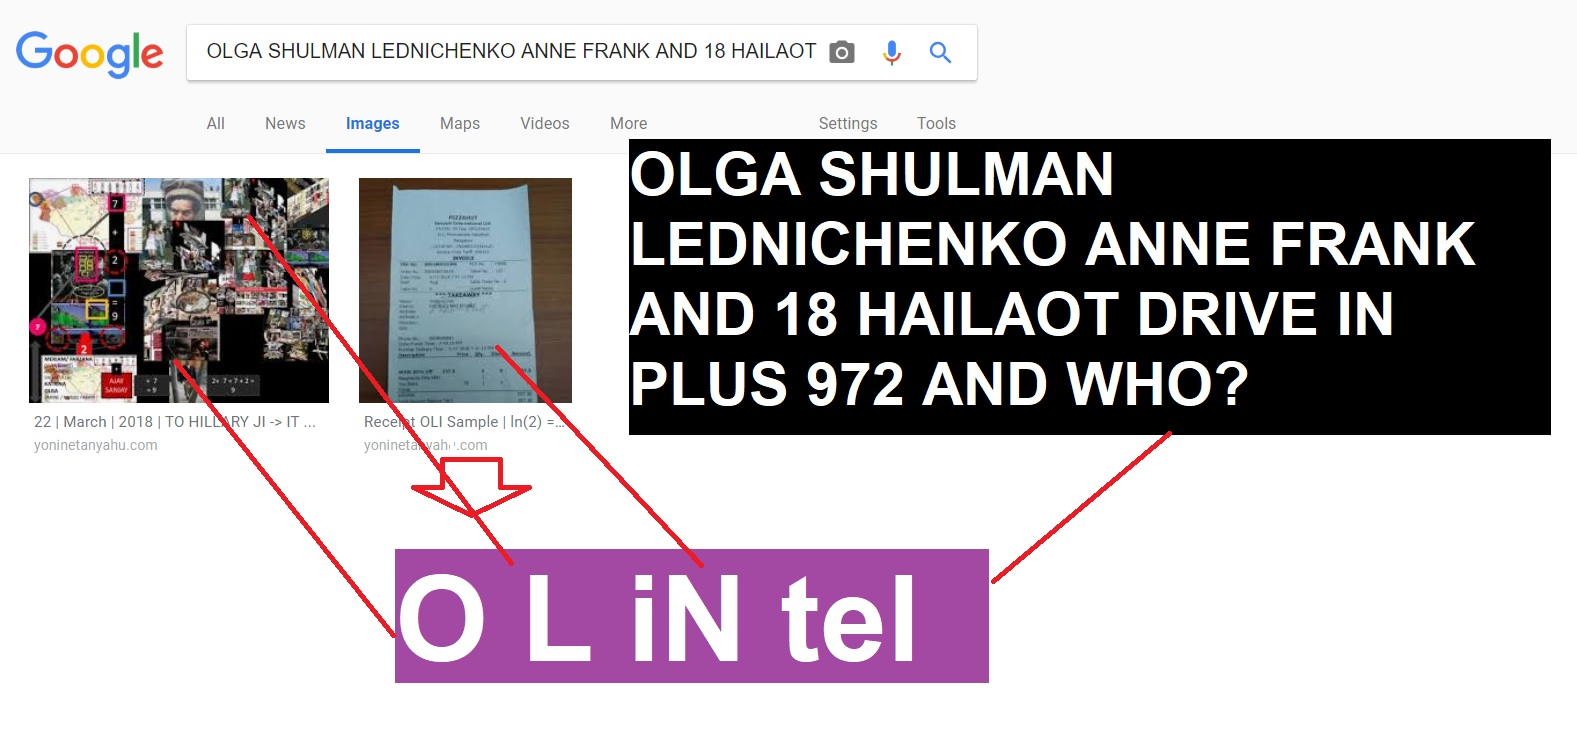 olga shulman lednichenko anne frank and 18 hailaot drive in plus 972 and who - p oli 7